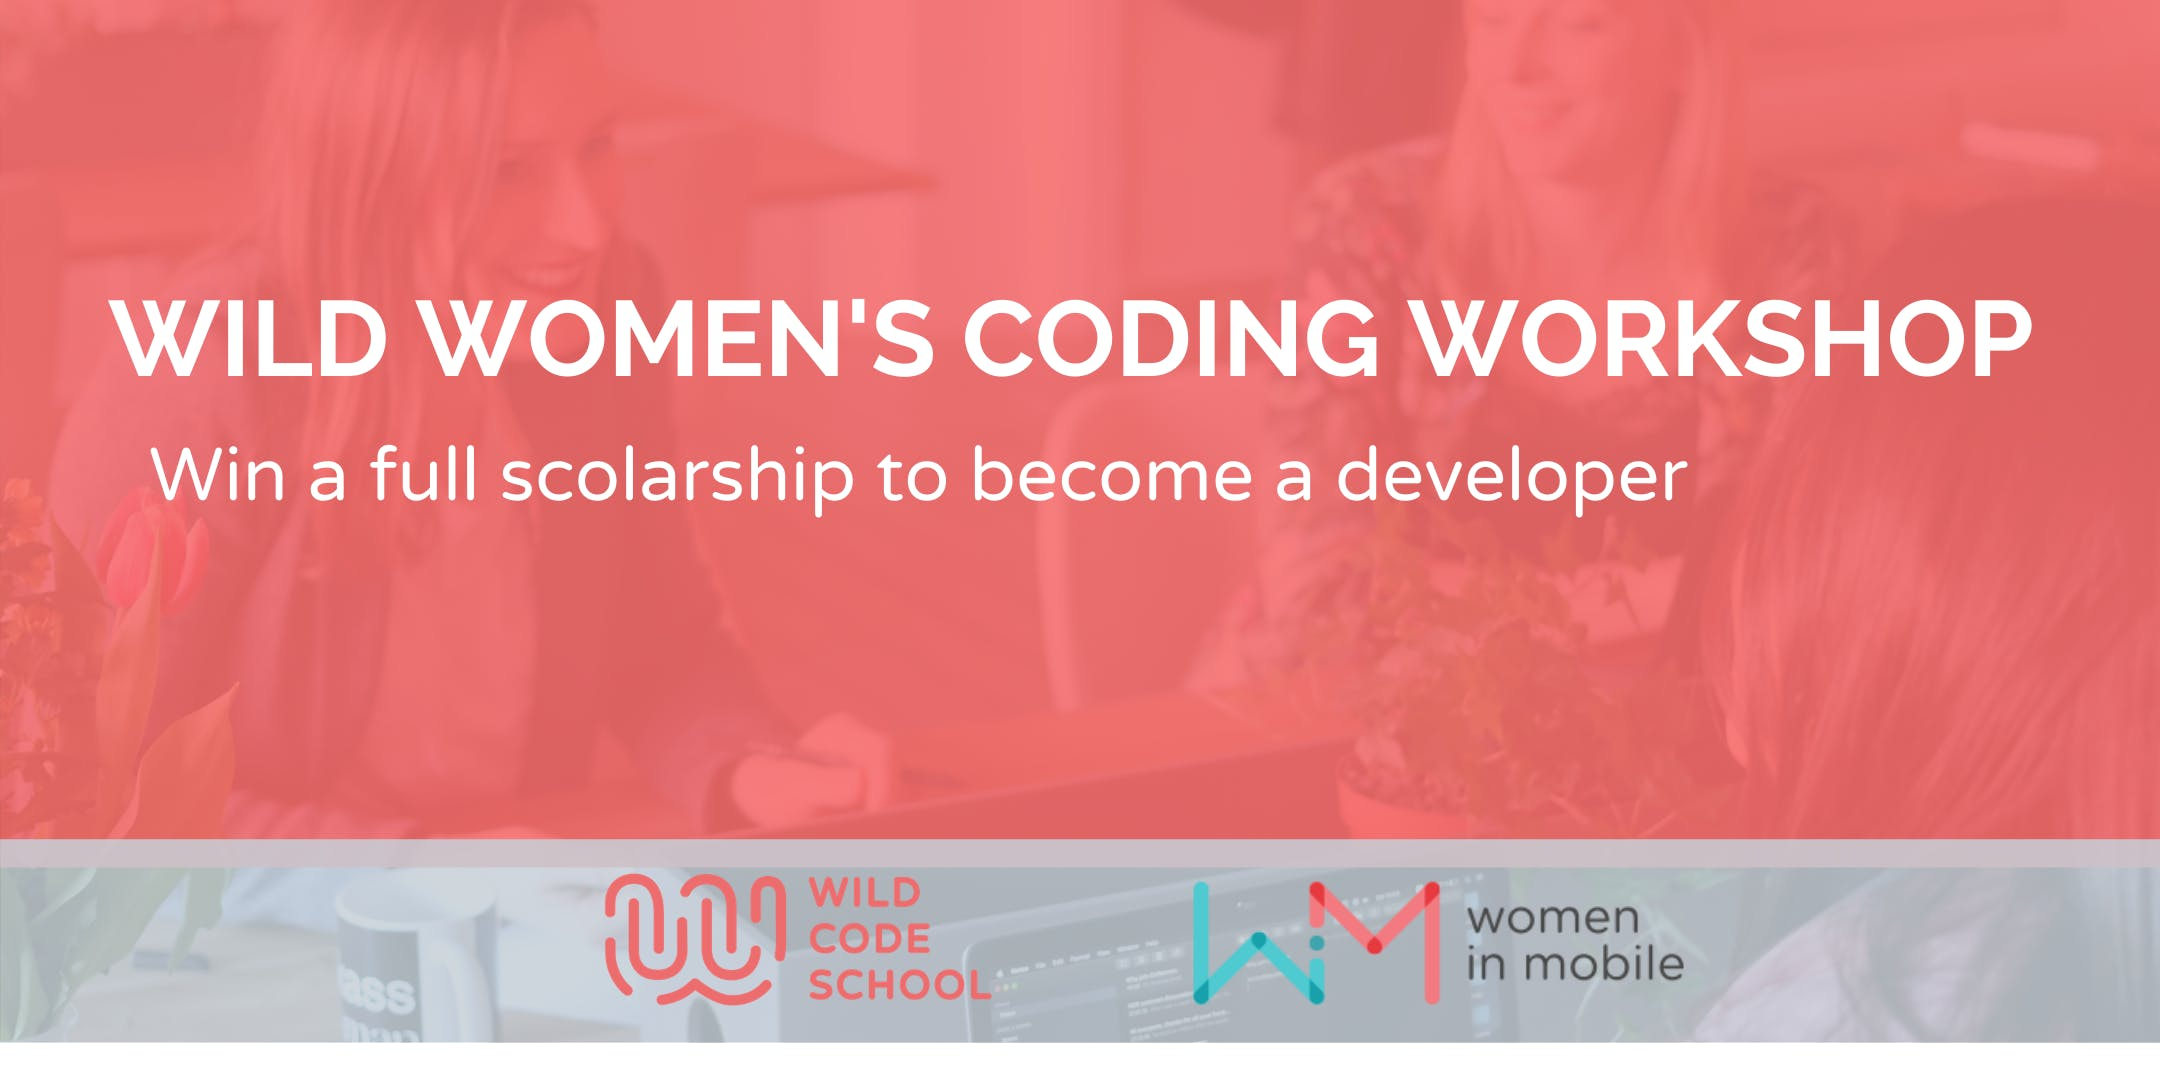 WILD WOMEN CODING WORKSHOP- Win a scholarship and